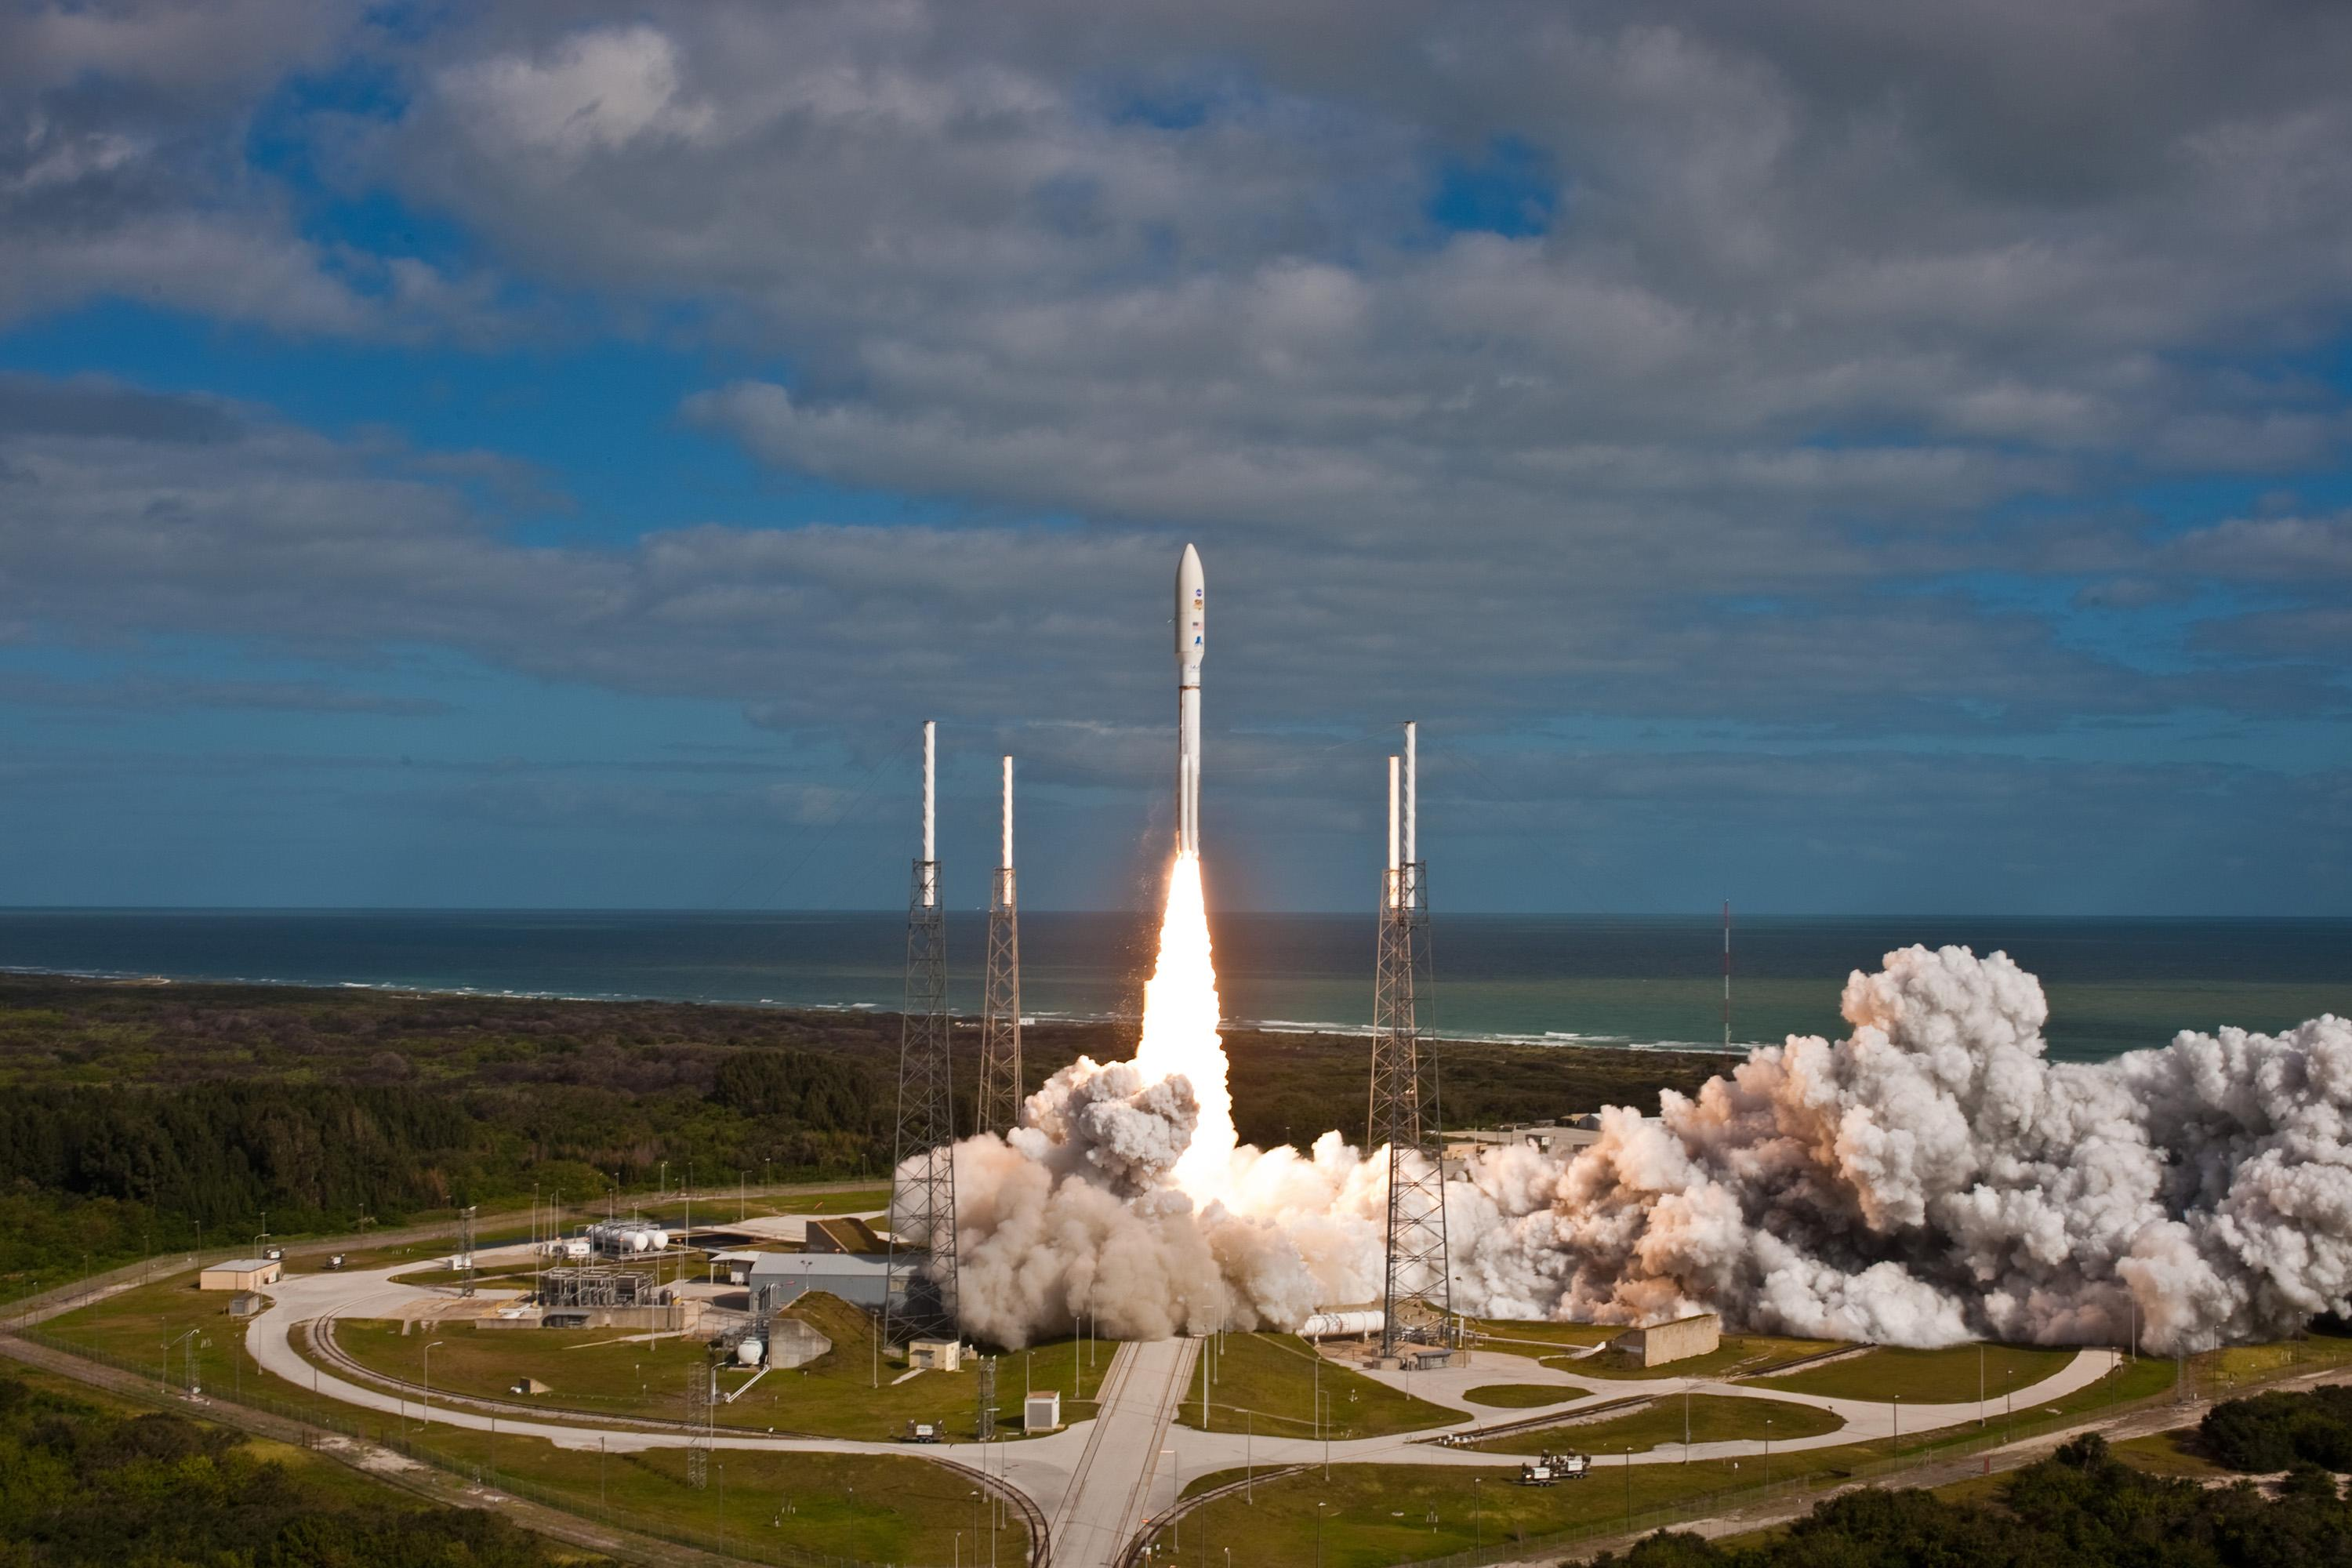 NASA's Mars Science Laboratory spacecraft, sealed inside its payload fairing atop the United Launch Alliance Atlas V rocket, clears the tower at Space Launch Complex 41 on Cape Canaveral Air Force Station in Florida.